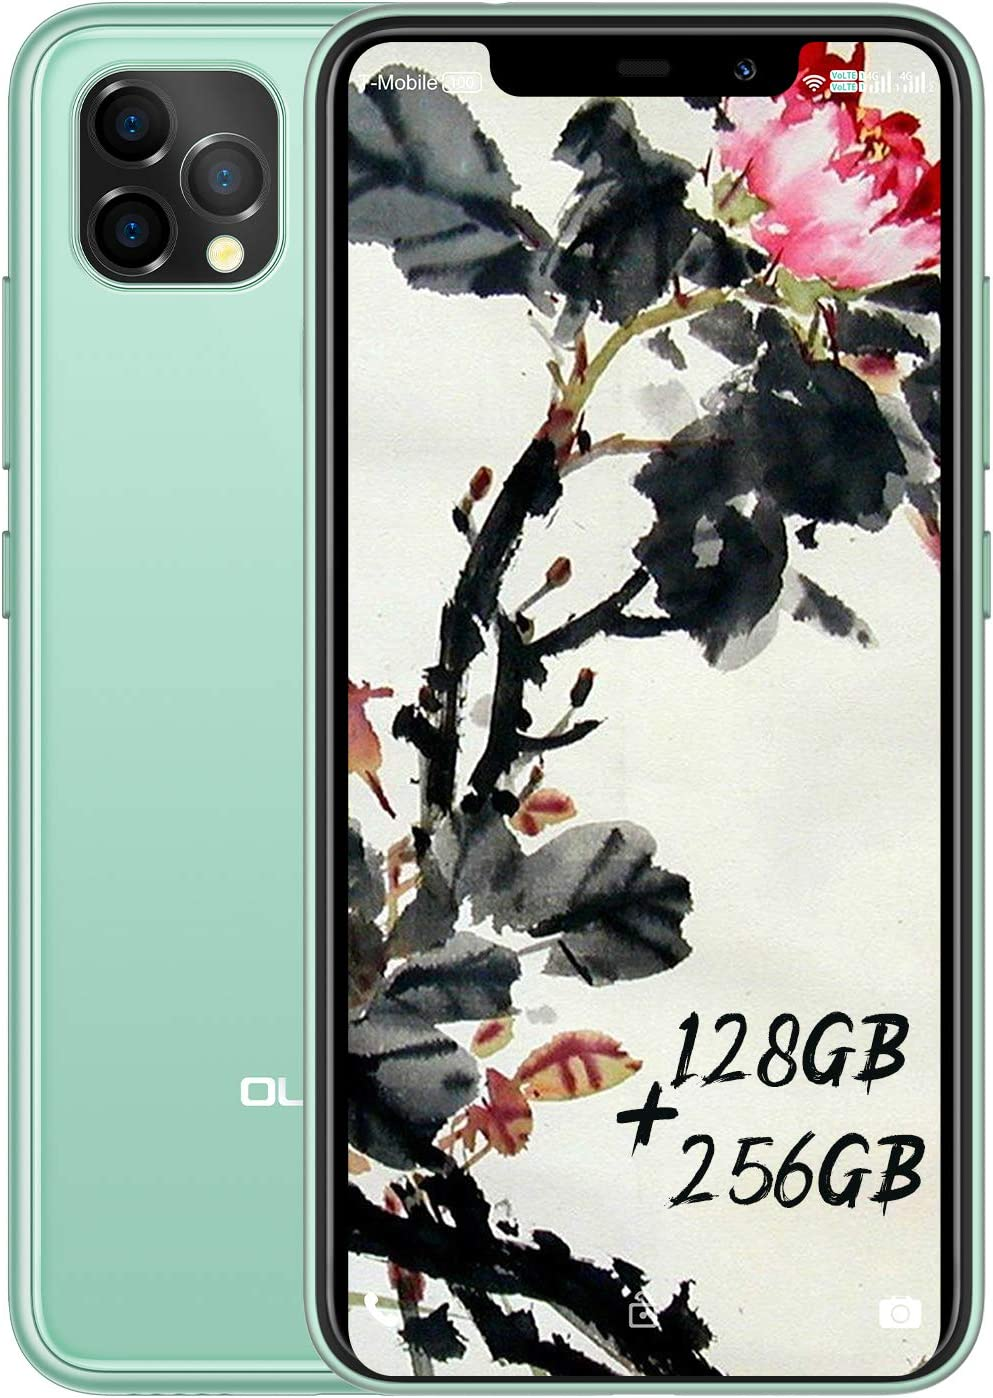 OUKITEL C22 Unlocked Smartphone, 4G Android 10 Triple Cameras Cell Phone, 4GB 128GB Dual SIM 4000mAh Battery 5.86 Inches 13MP Rear Camera Face Fingerprint ID Global LTE Mobile Phone (Green)